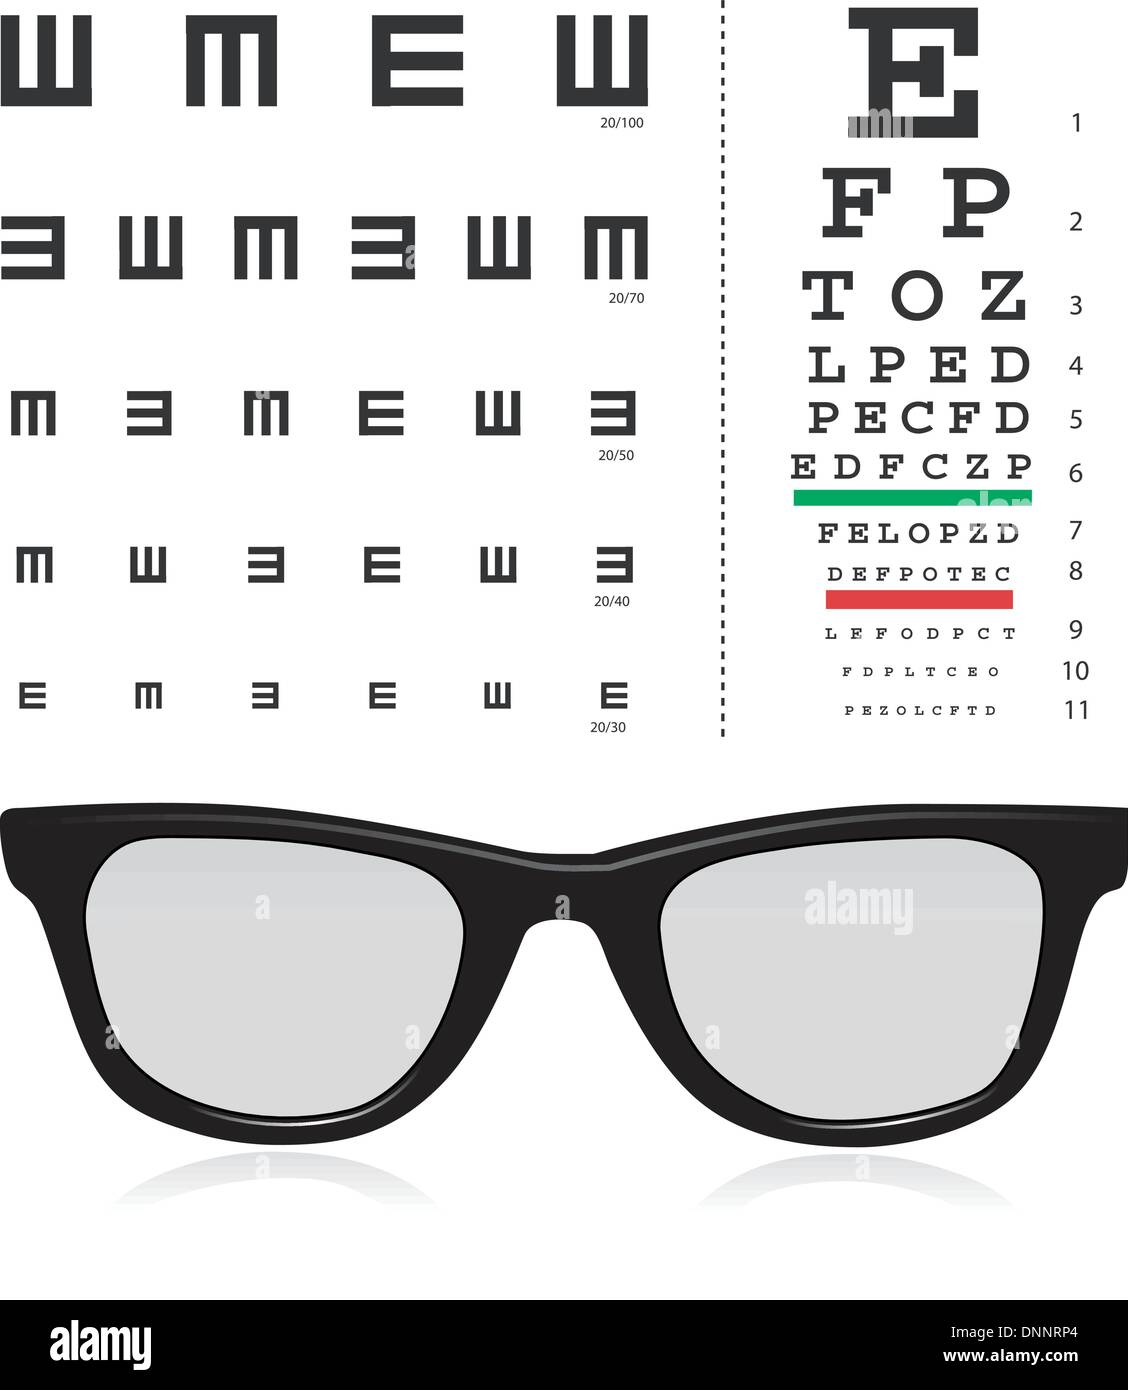 vector Snellen eye test chart with glass isolated on white background. - Stock Image